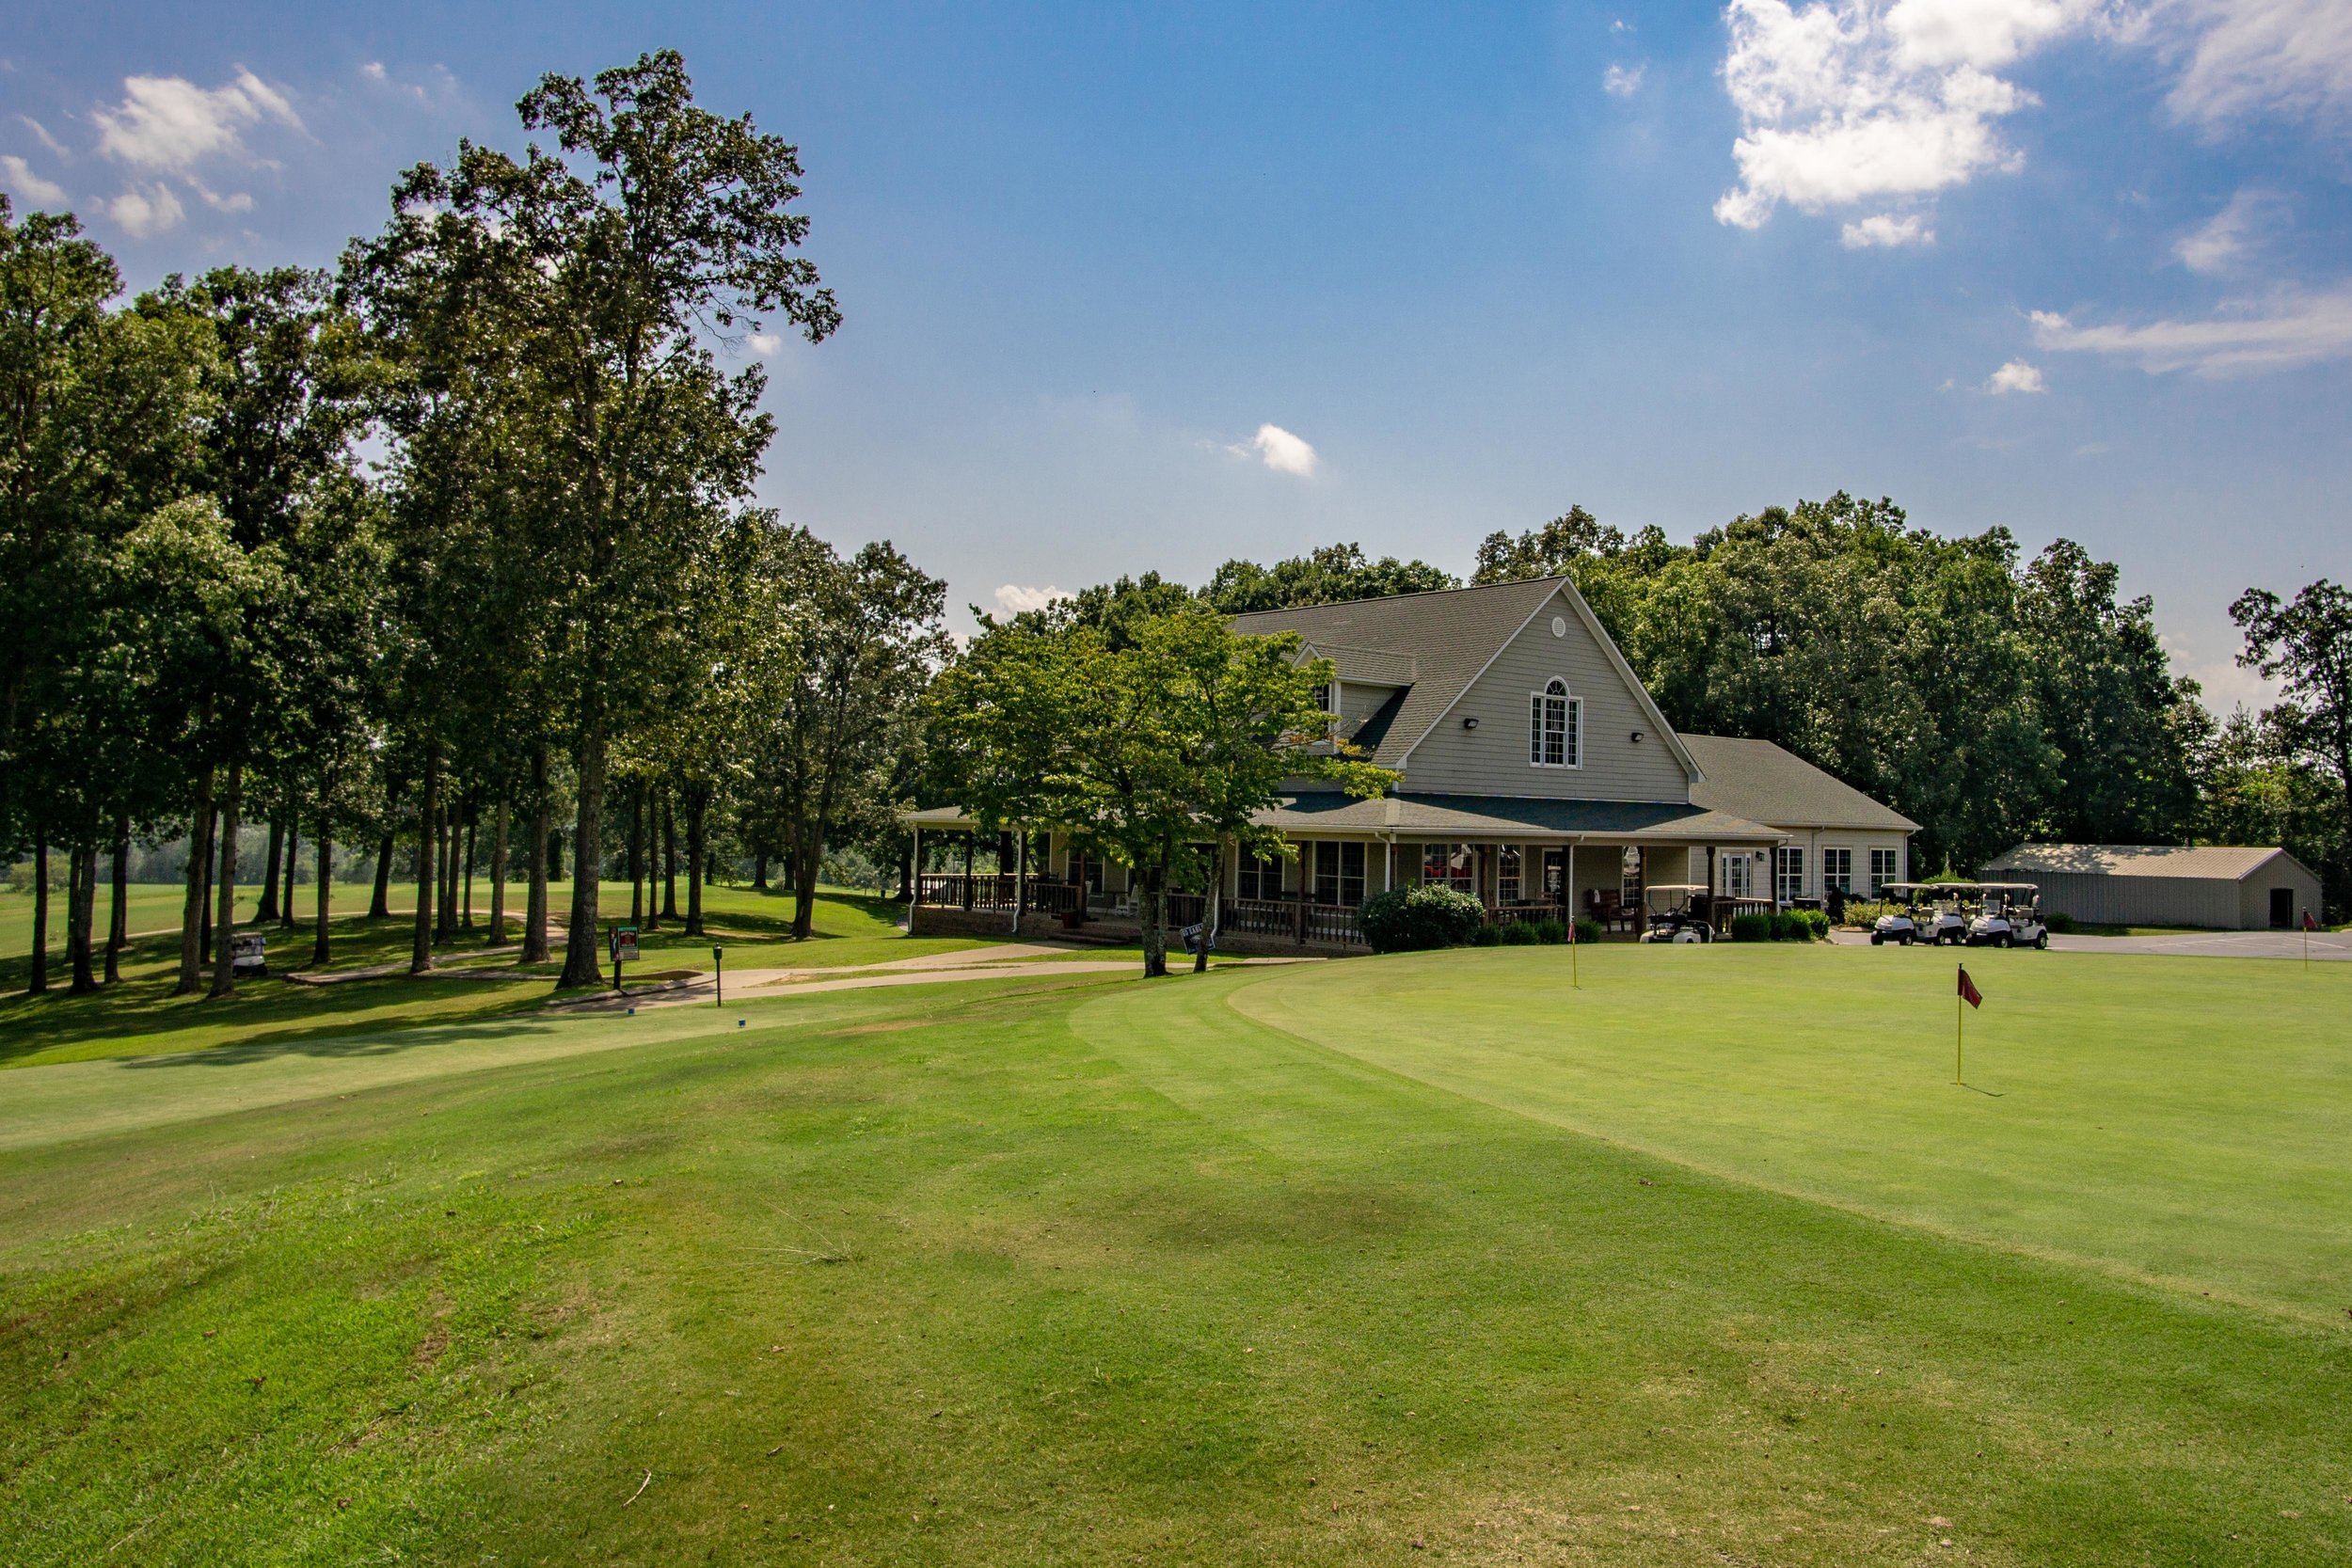 Dixie Oaks Golf Club Summertown TN Real Estate Photographer Pro -7.jpg